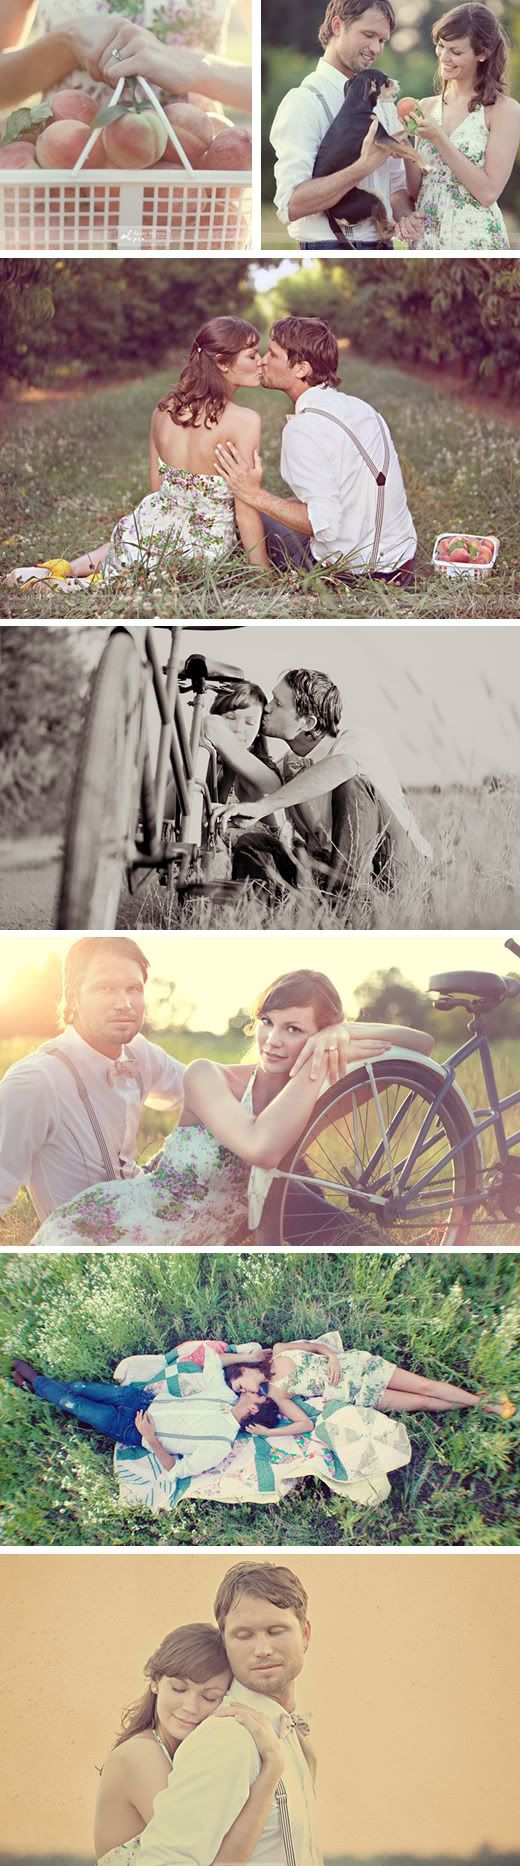 Engagement Photoshoot Ideas | Traditionally Modern Designs: Vintage Engagement Photoshoot